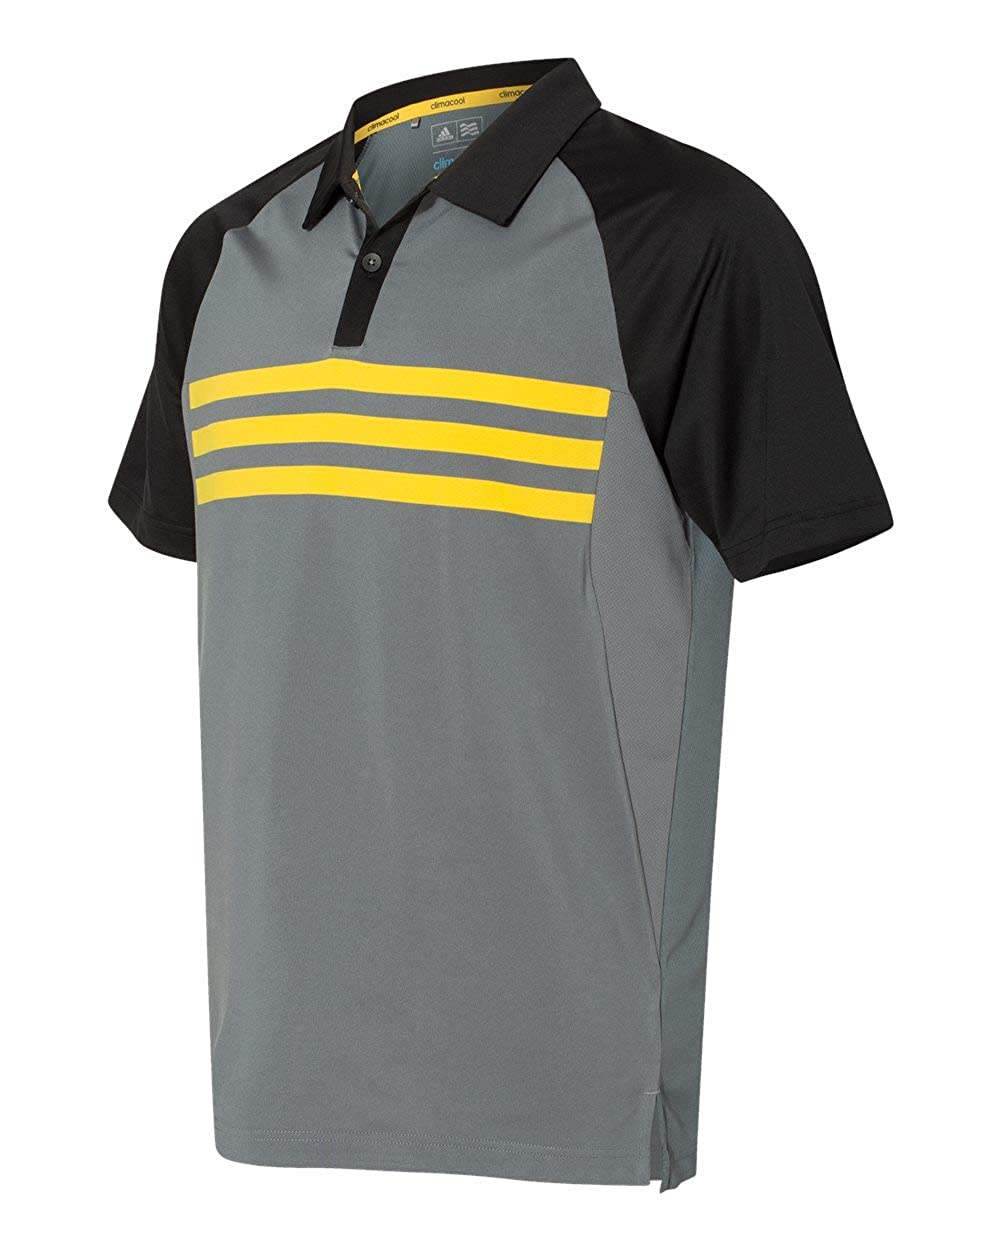 b85998622a8 adidas Mens Climacool 3-Stripes Sport Shirt (A224) at Amazon Men's Clothing  store: